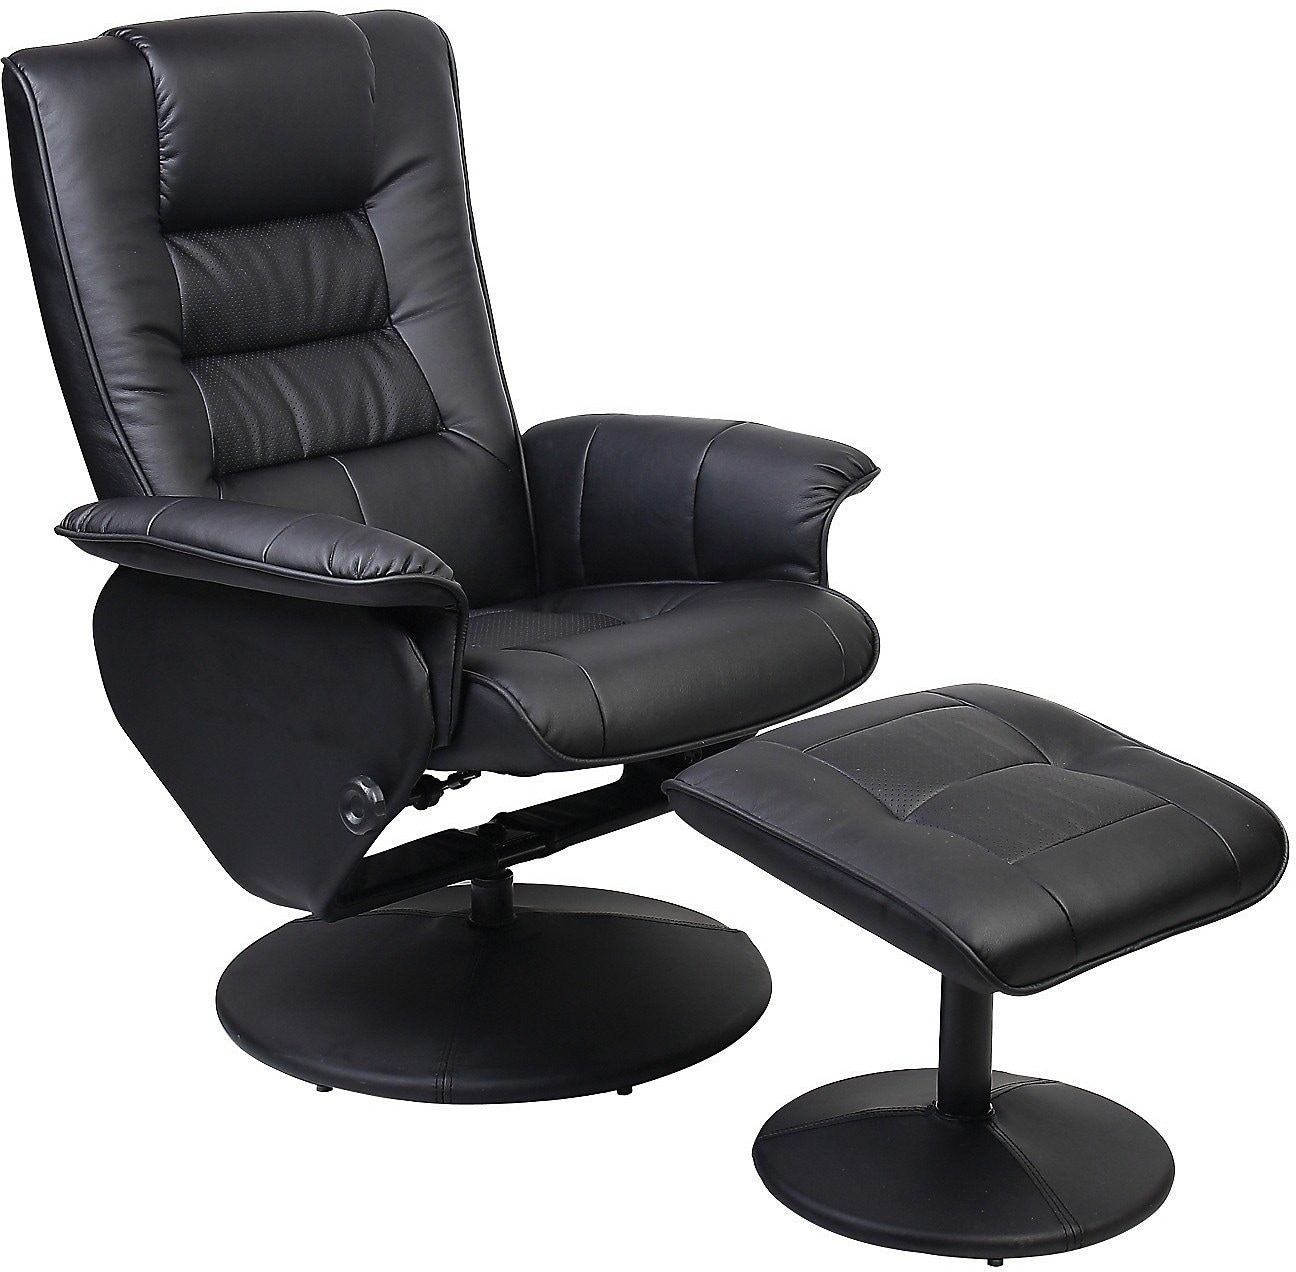 Duncan Reclining Chair w Ottoman Black